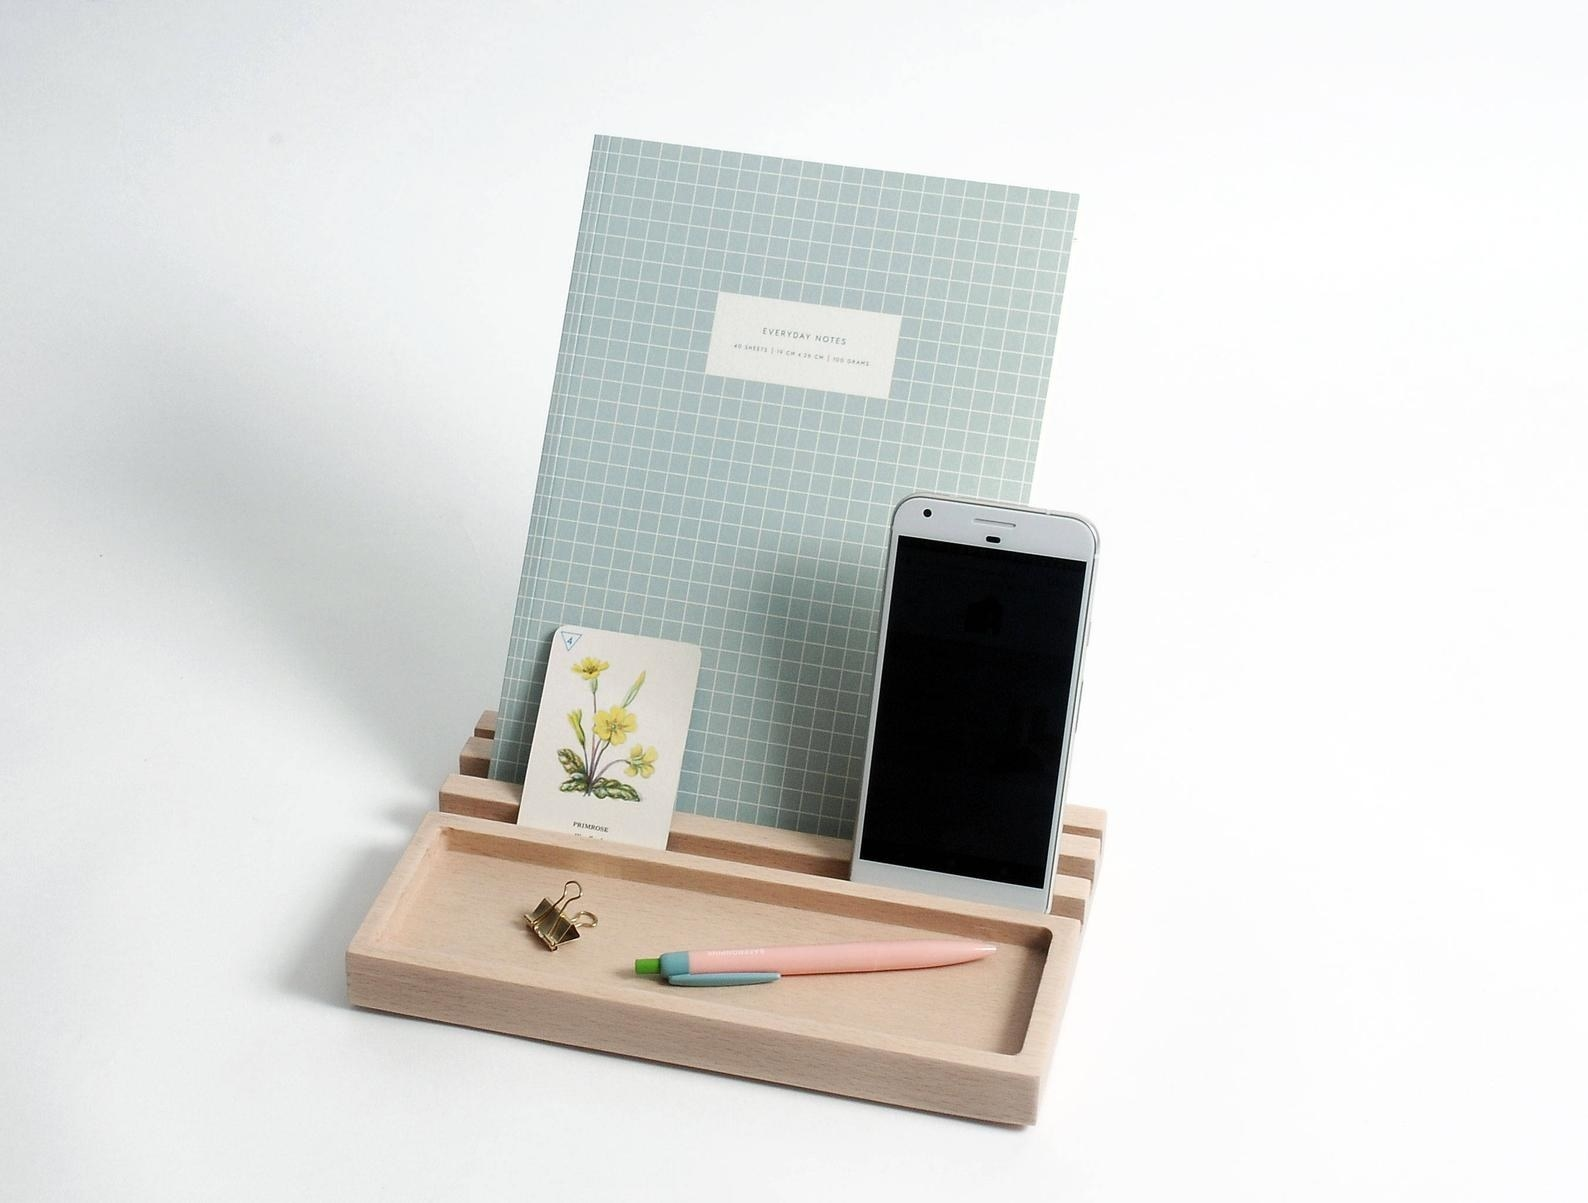 The rectangle-shaped light wood tray with slots that are holding a notebook and phone